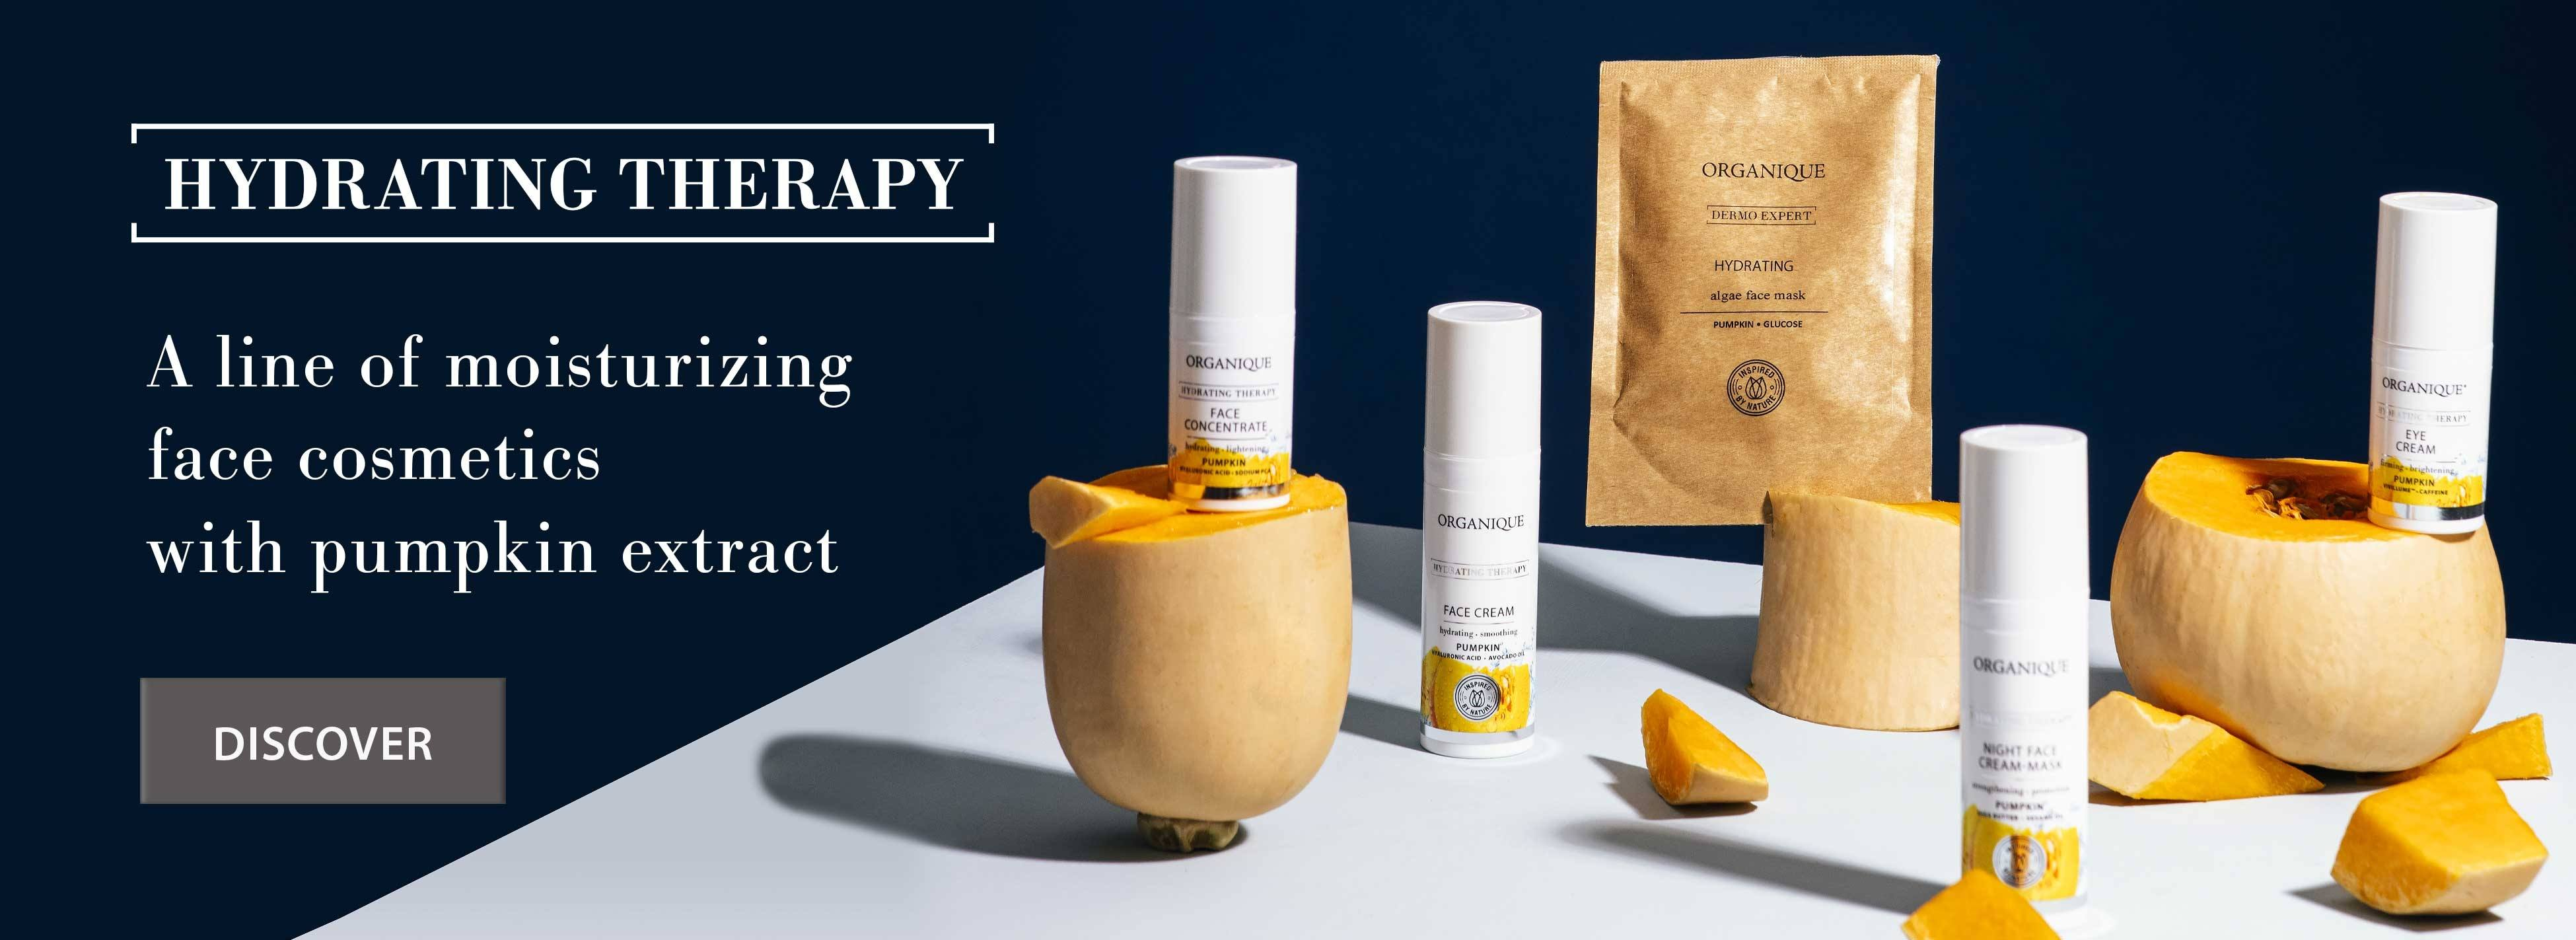 Hydrating Therapy Pumpkin